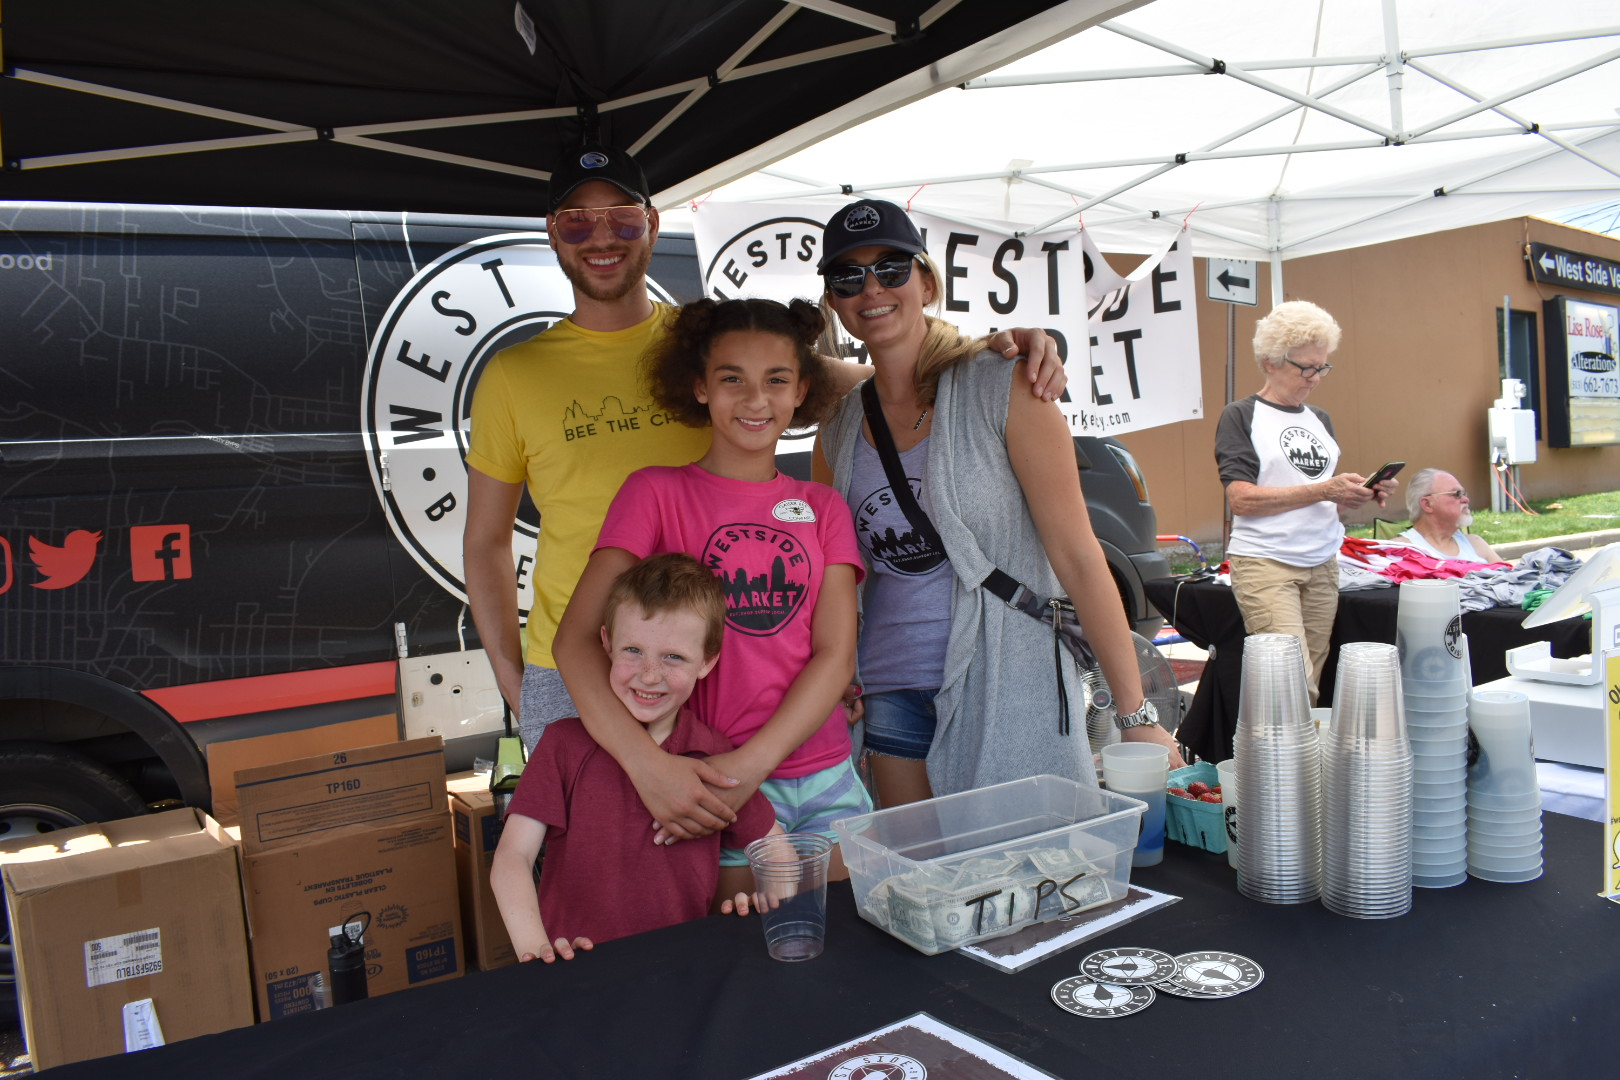 Amber, Logan & Ada - Market Volunteers - We have some amazing friends that volunteer their time on market day to help support local businesses and our community.